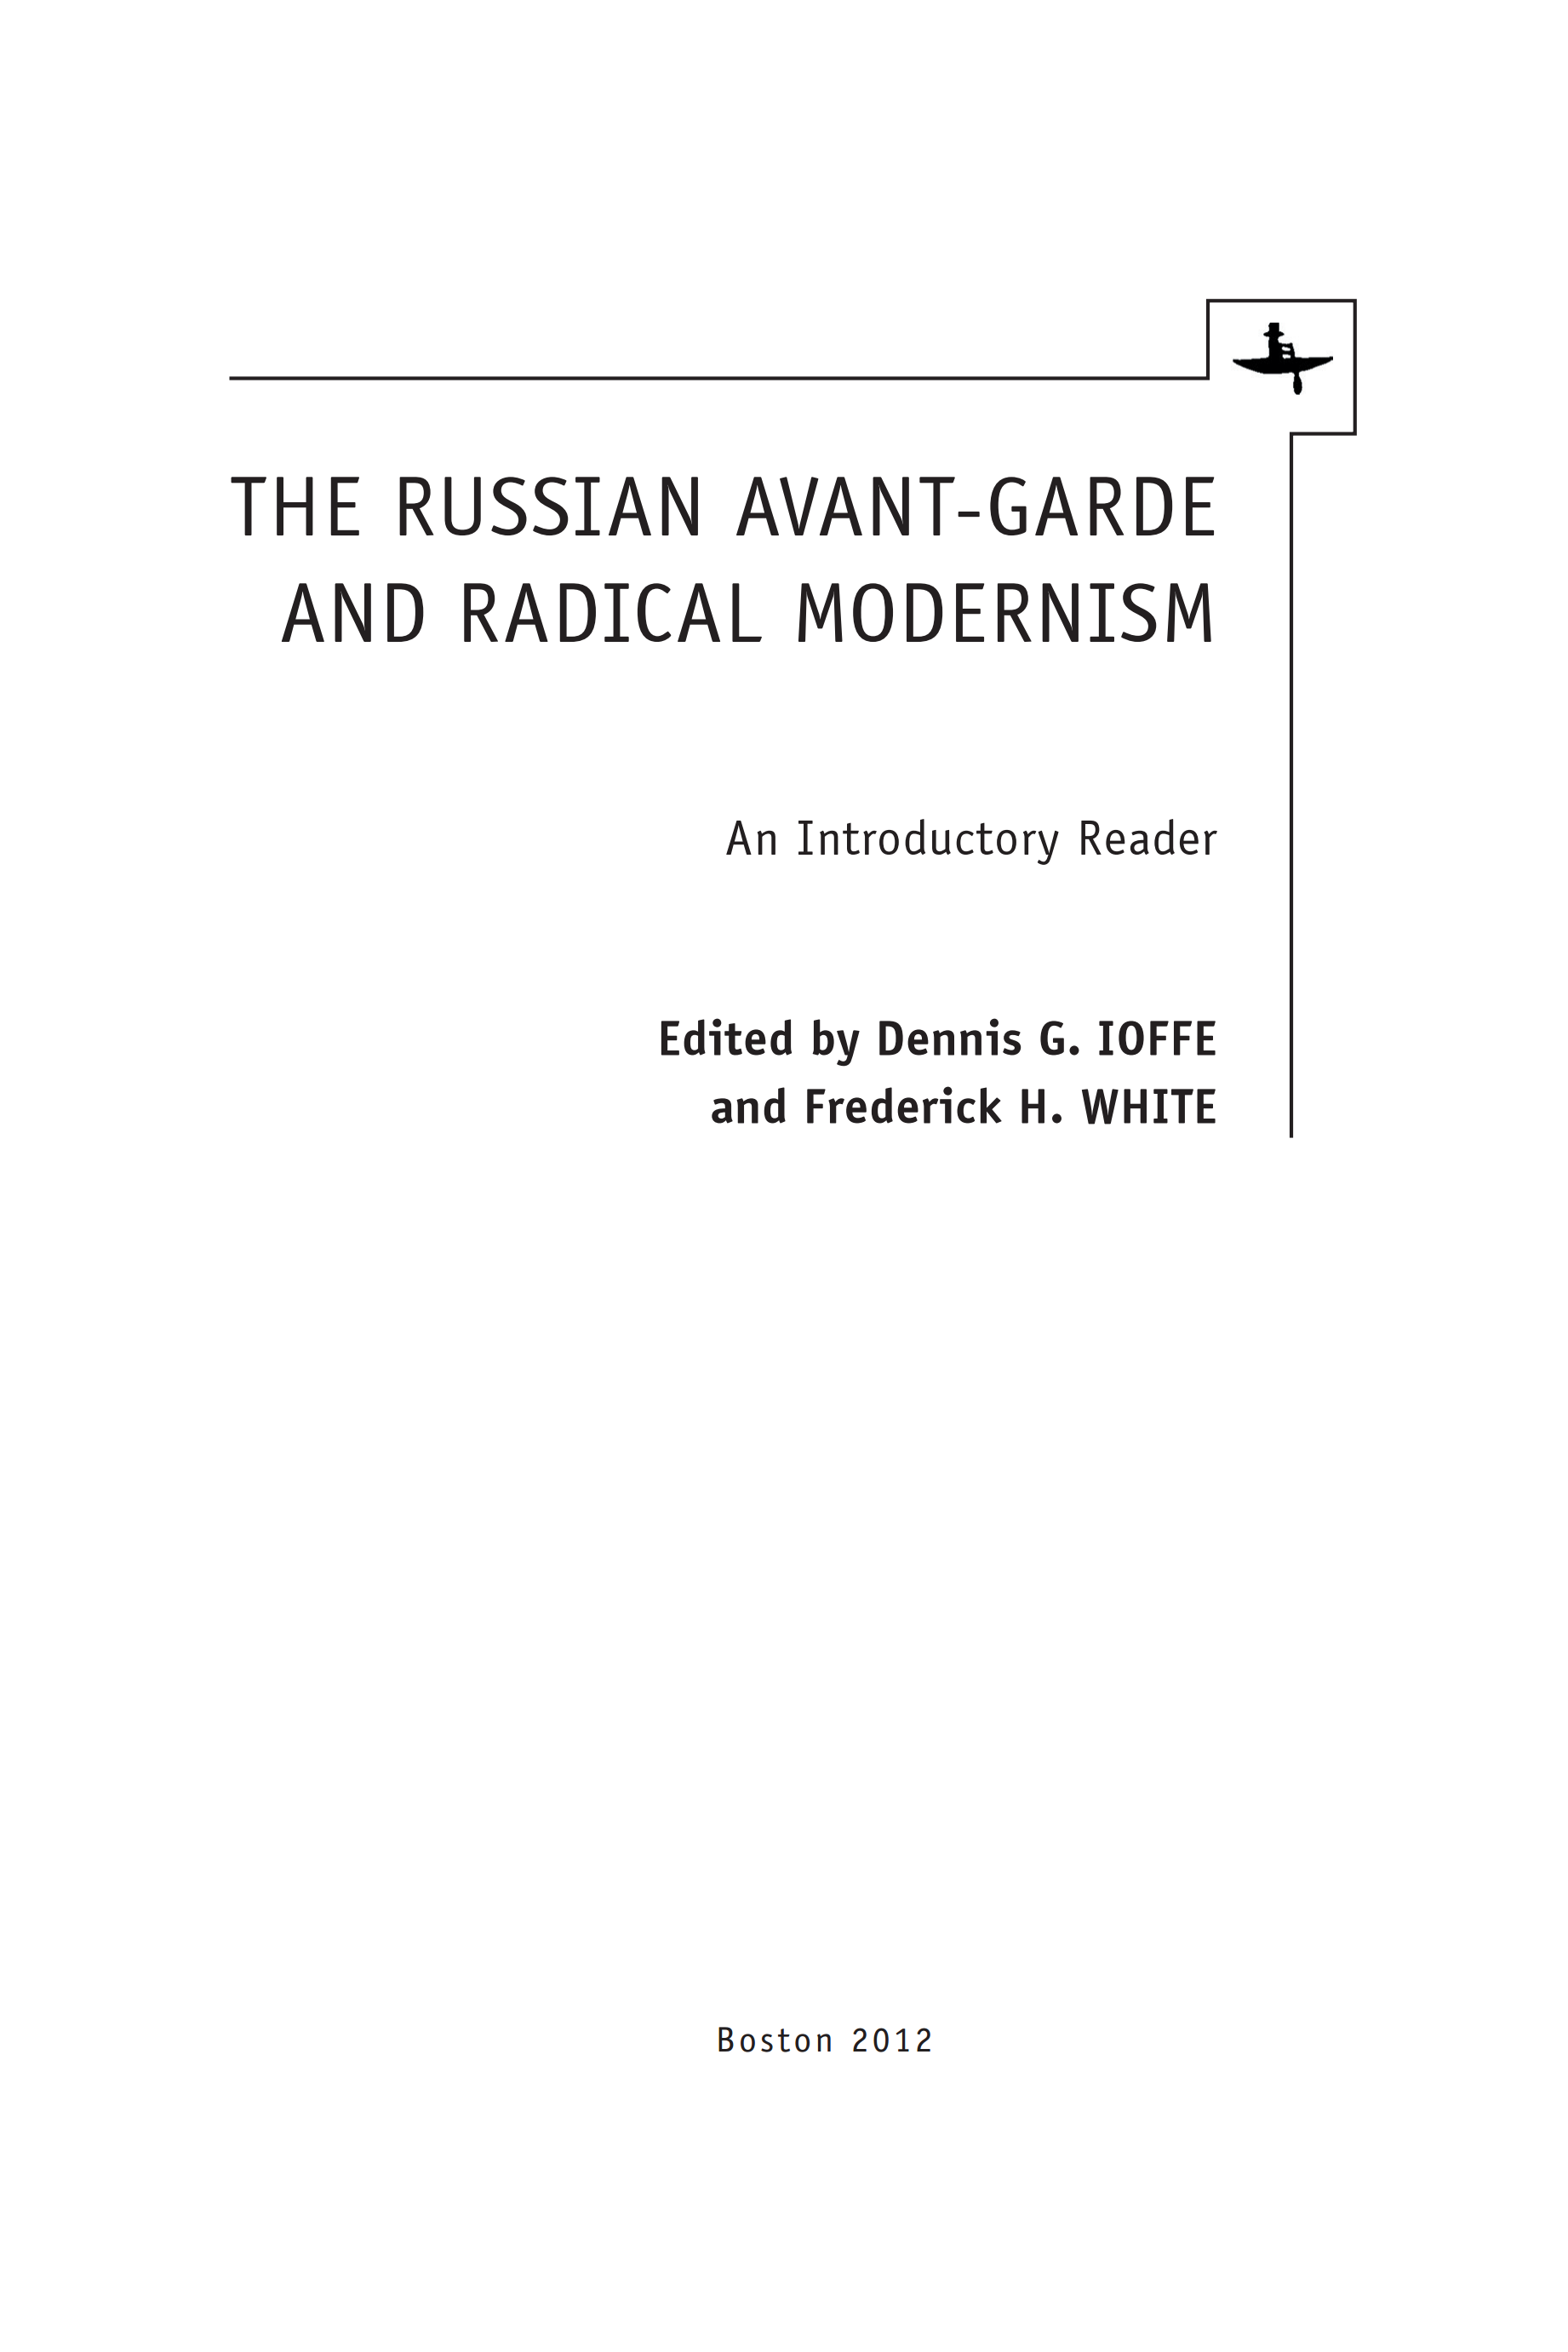 The Russian Avant-Garde and Radical Modernism : An Introductory Reader / Edited by Dennis G. Ioffe and Frederick H. White. — Boston : Academic Studies Press, 2012